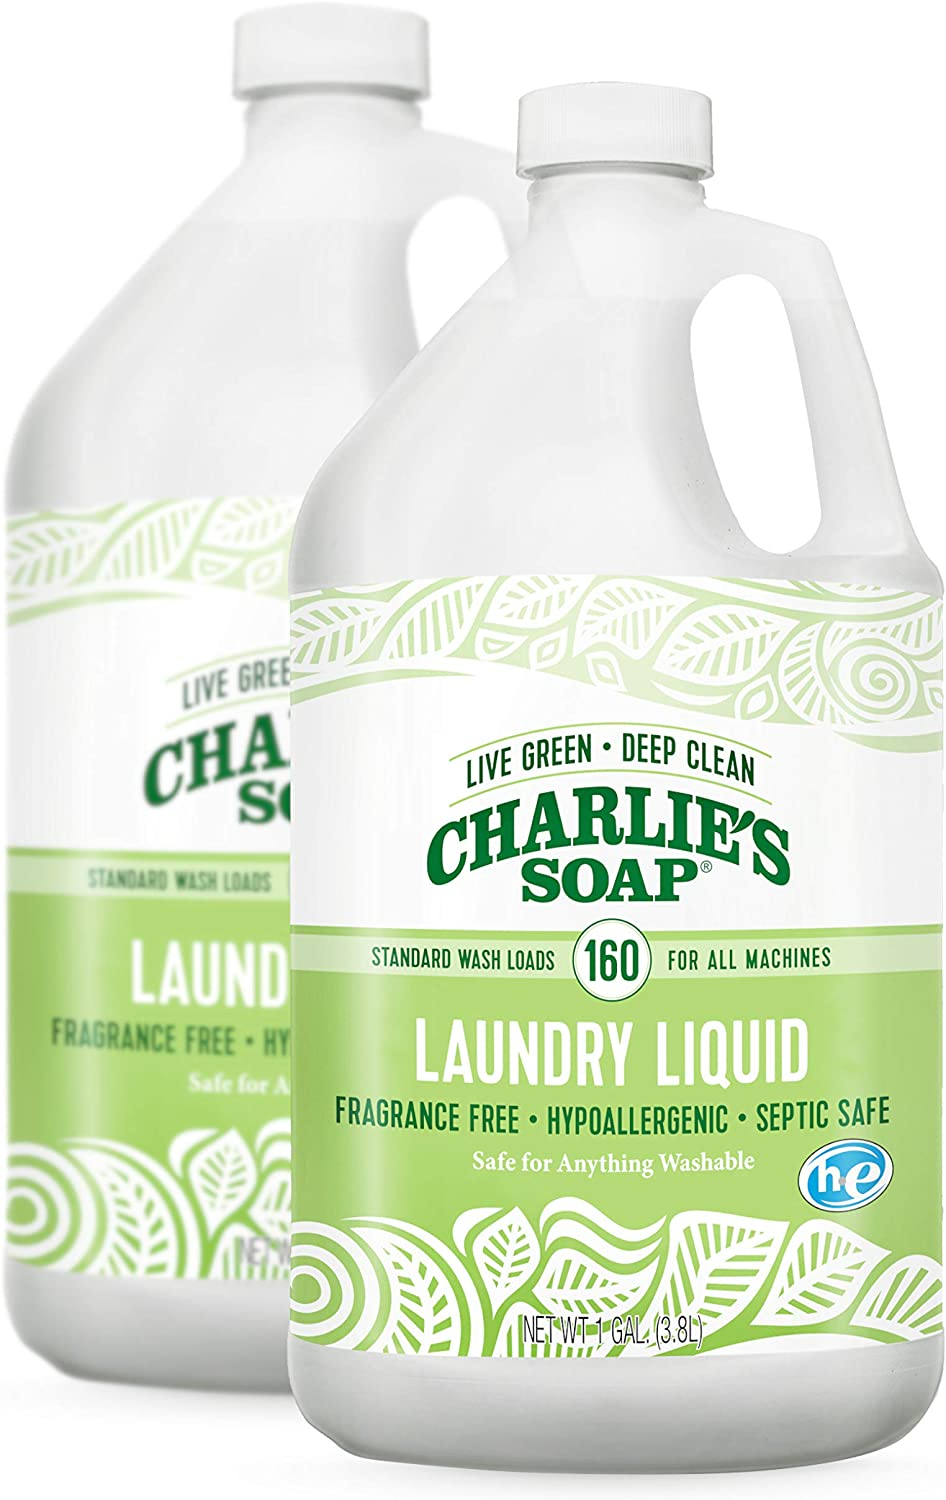 Charlie's Soap Laundry Liquid (160 Loads, 2 Pack) Natural Deep Cleaning Hypoallergenic Laundry Detergent – Safe, Effective and Non-Toxic